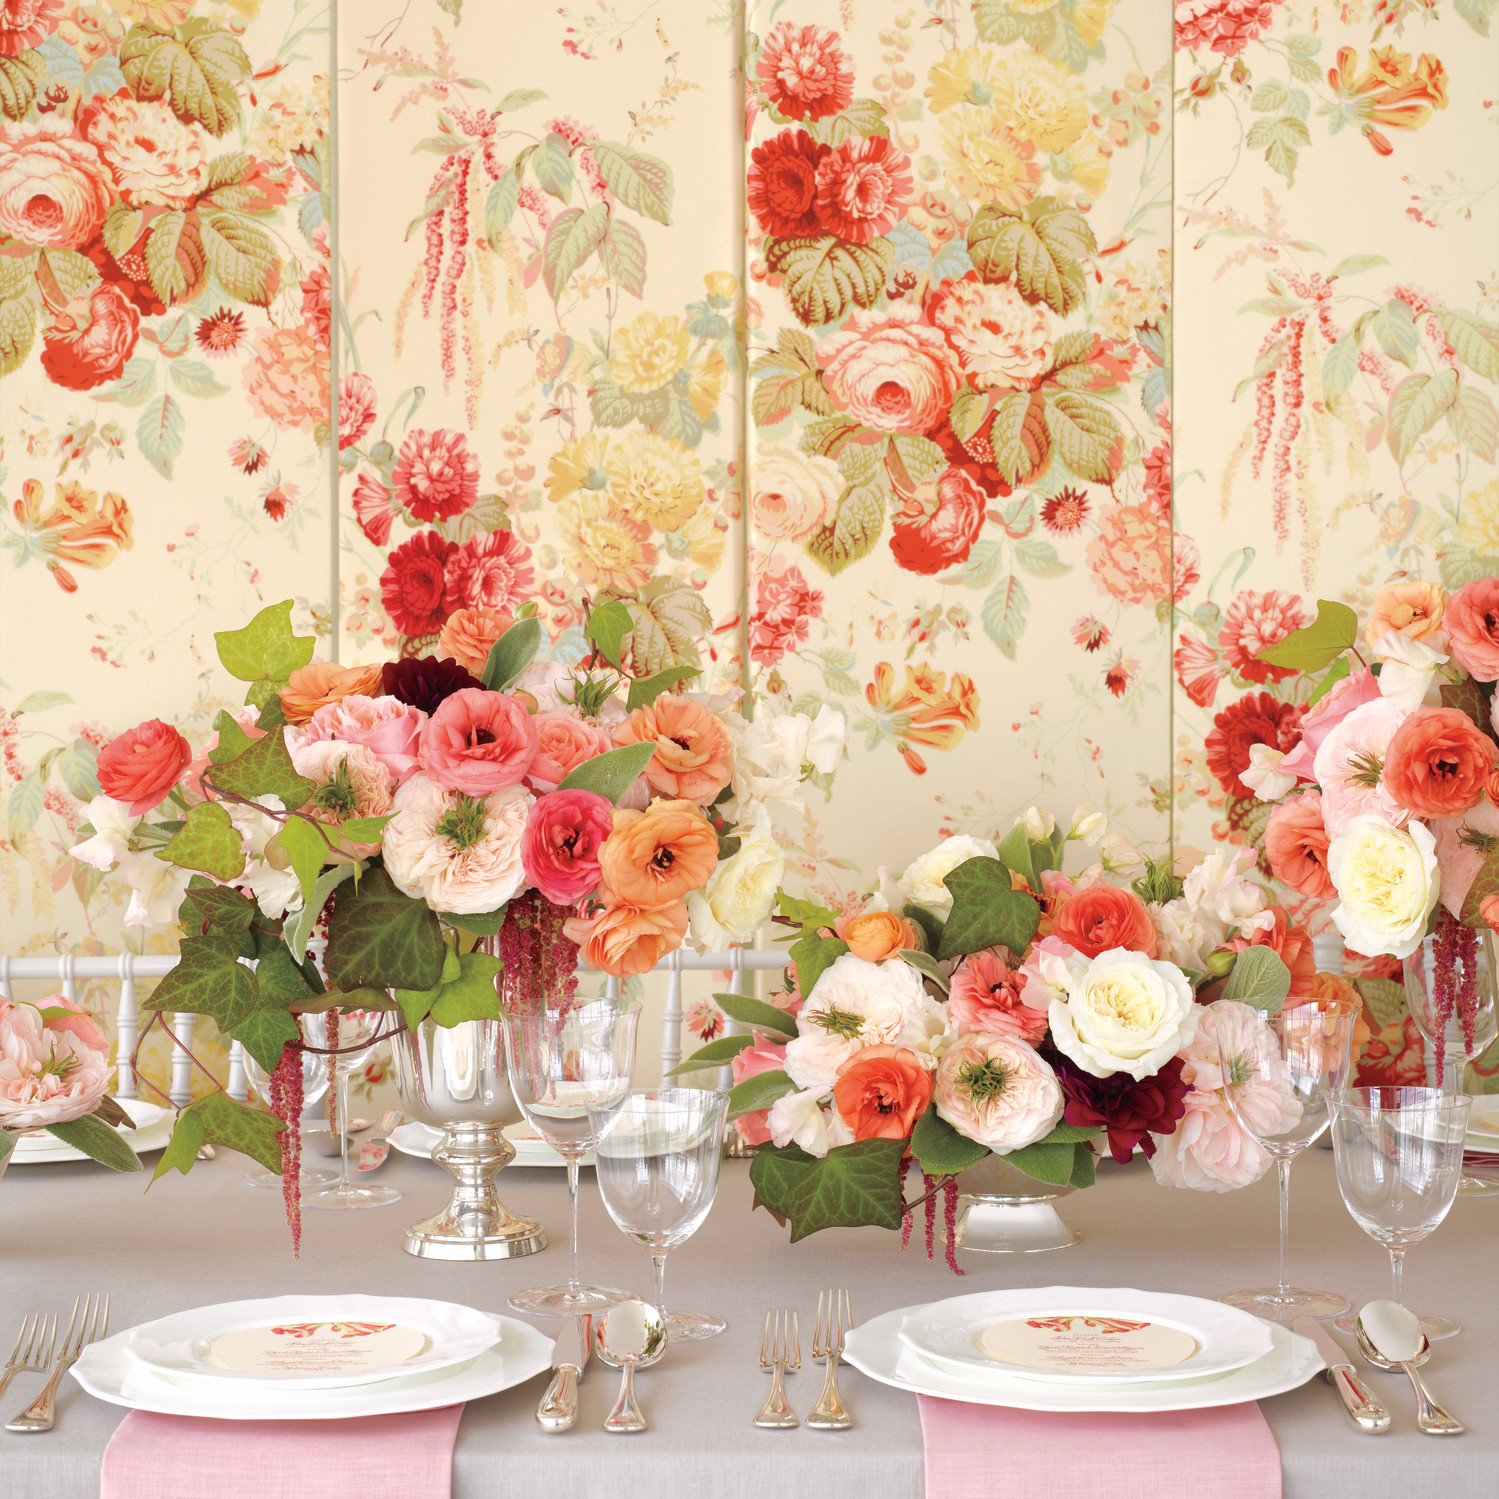 Flowers Wedding Ideas: Floral Fabric-Inspired Wedding Ideas